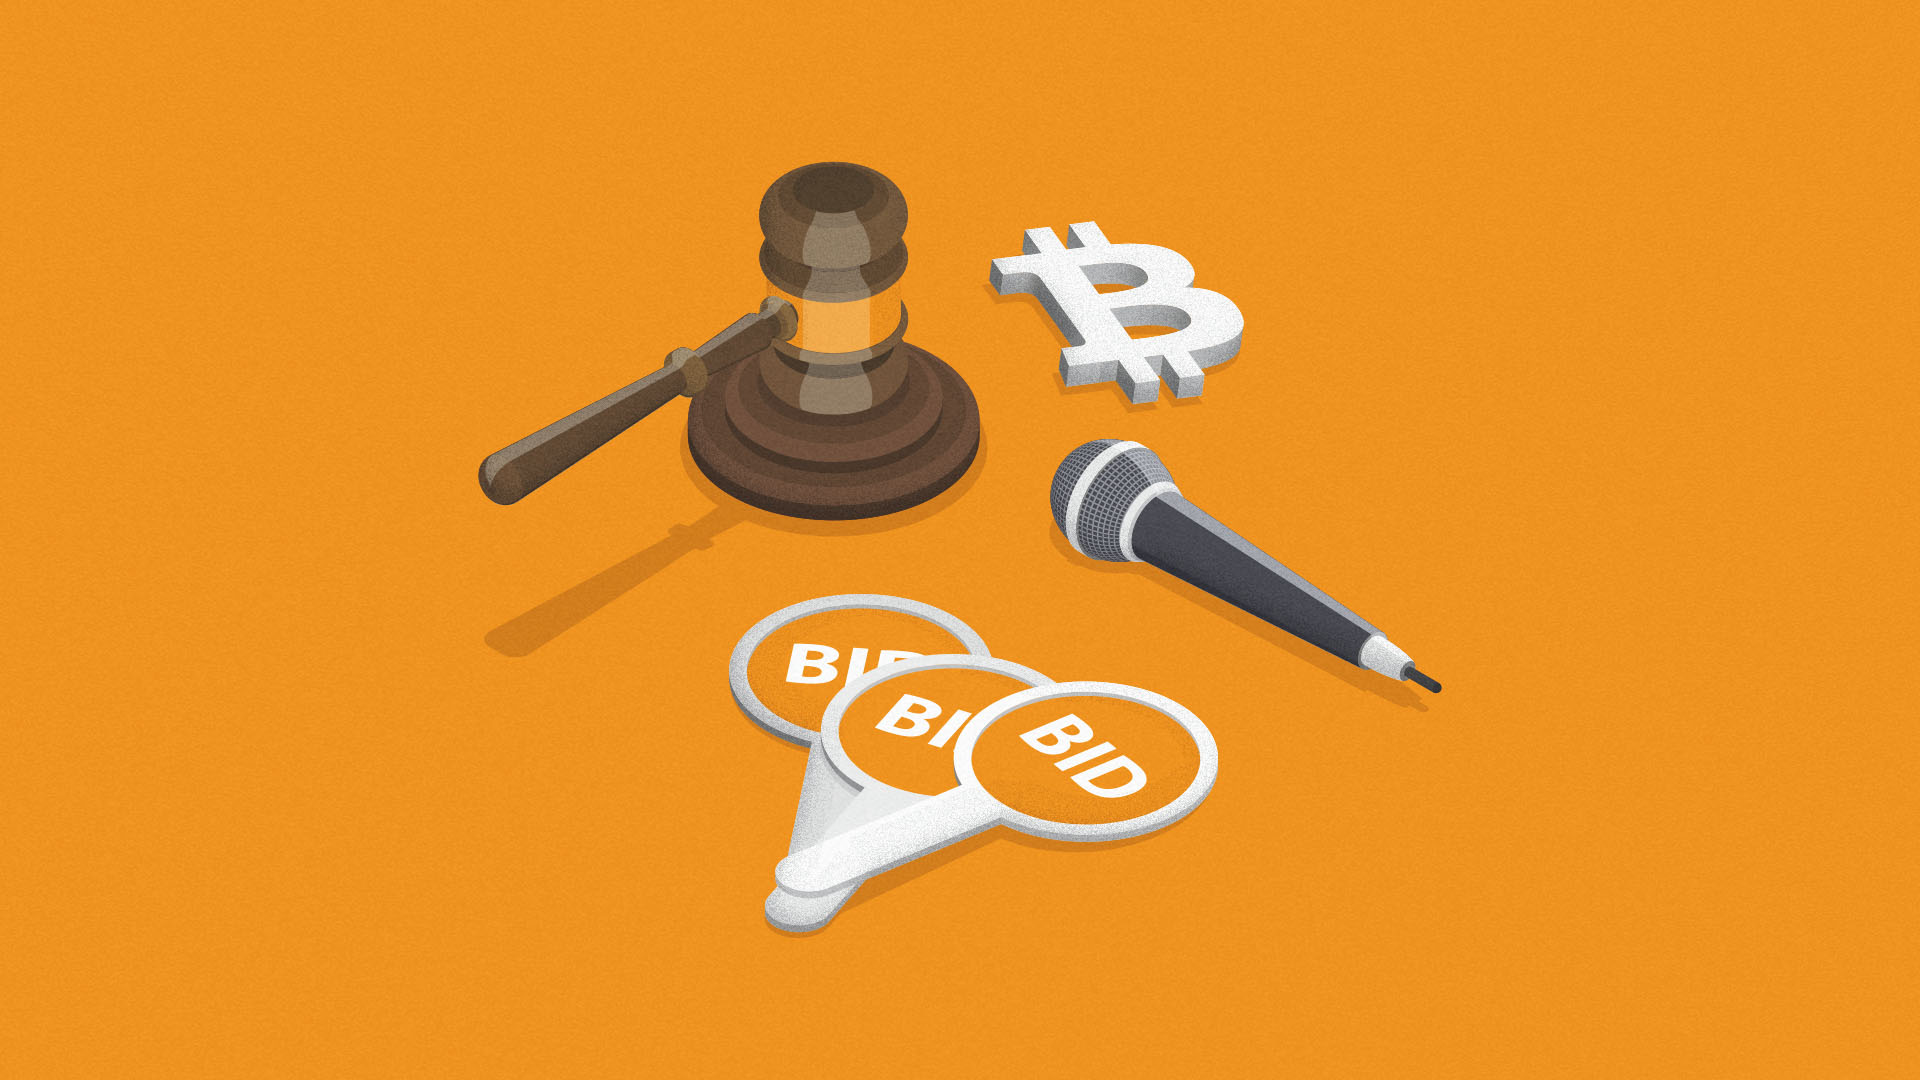 An auctioneer's gavel, auction paddles and a microphone sit on an orange background next to a Bitcoin symbol